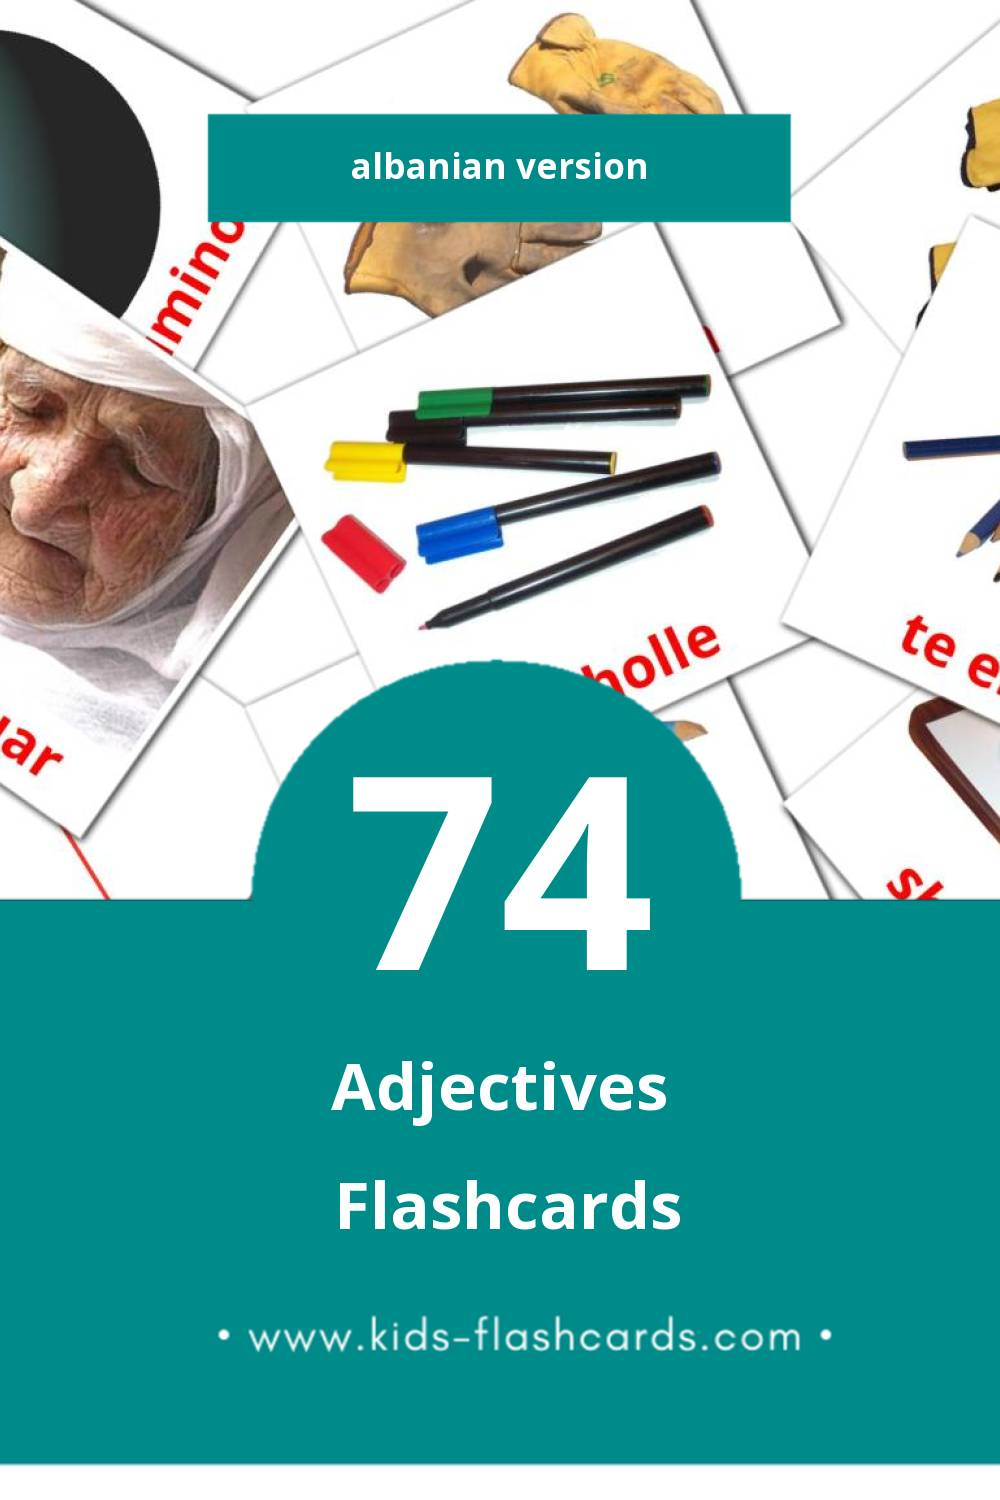 Visual Te kundertat Flashcards for Toddlers (74 cards in Albanian)